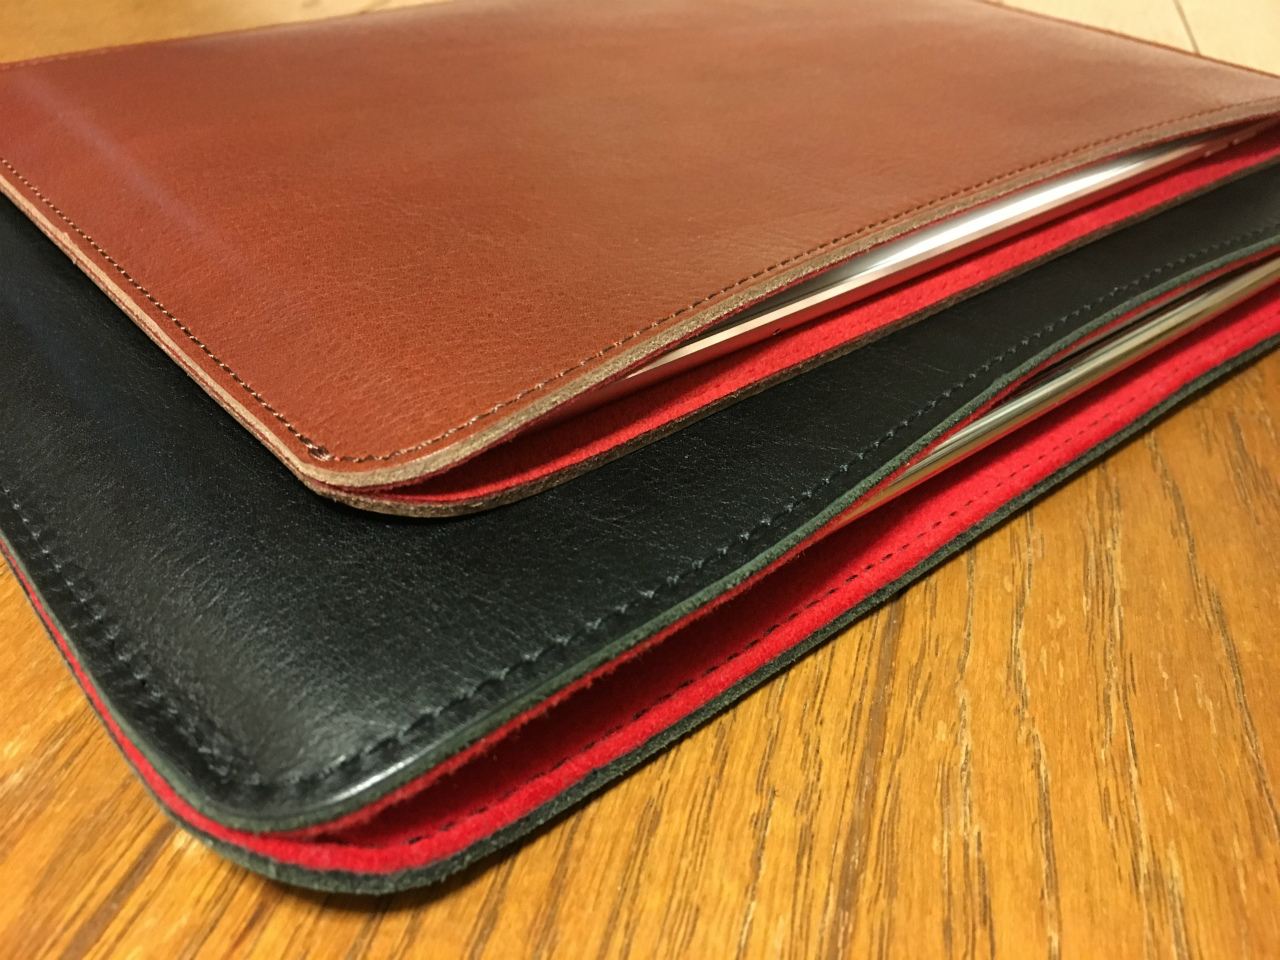 kunitachi-leather-sleeve-for-ipadpro-10